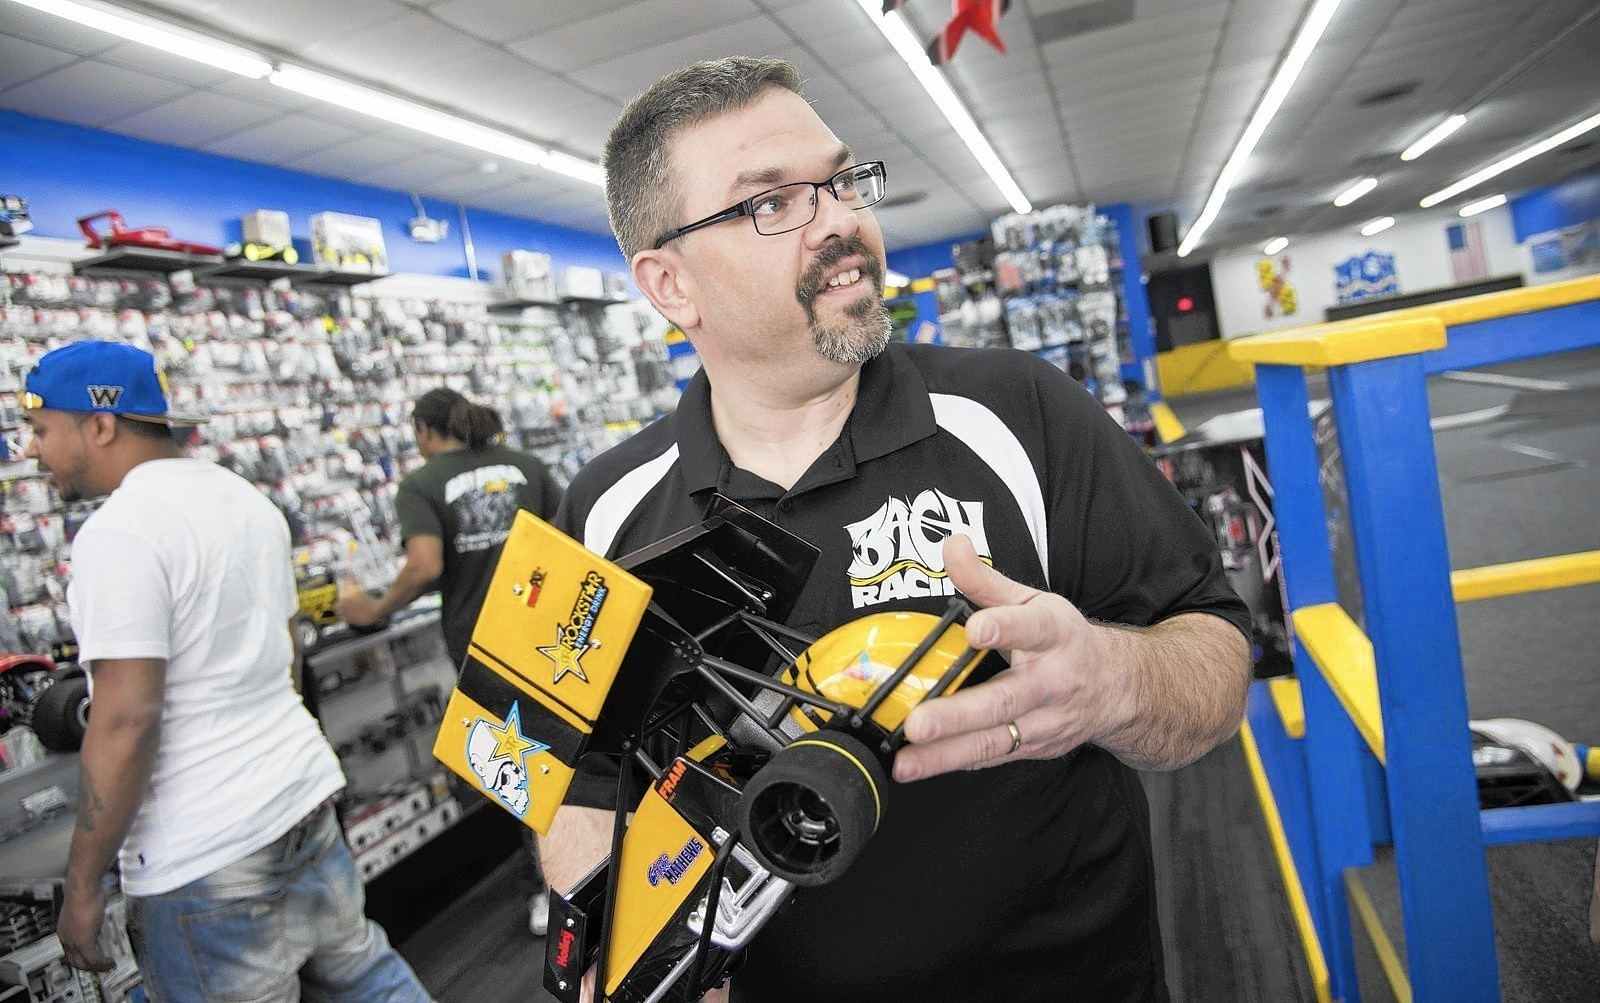 Pasadena Man Fosters Rc Car Community After Battle With